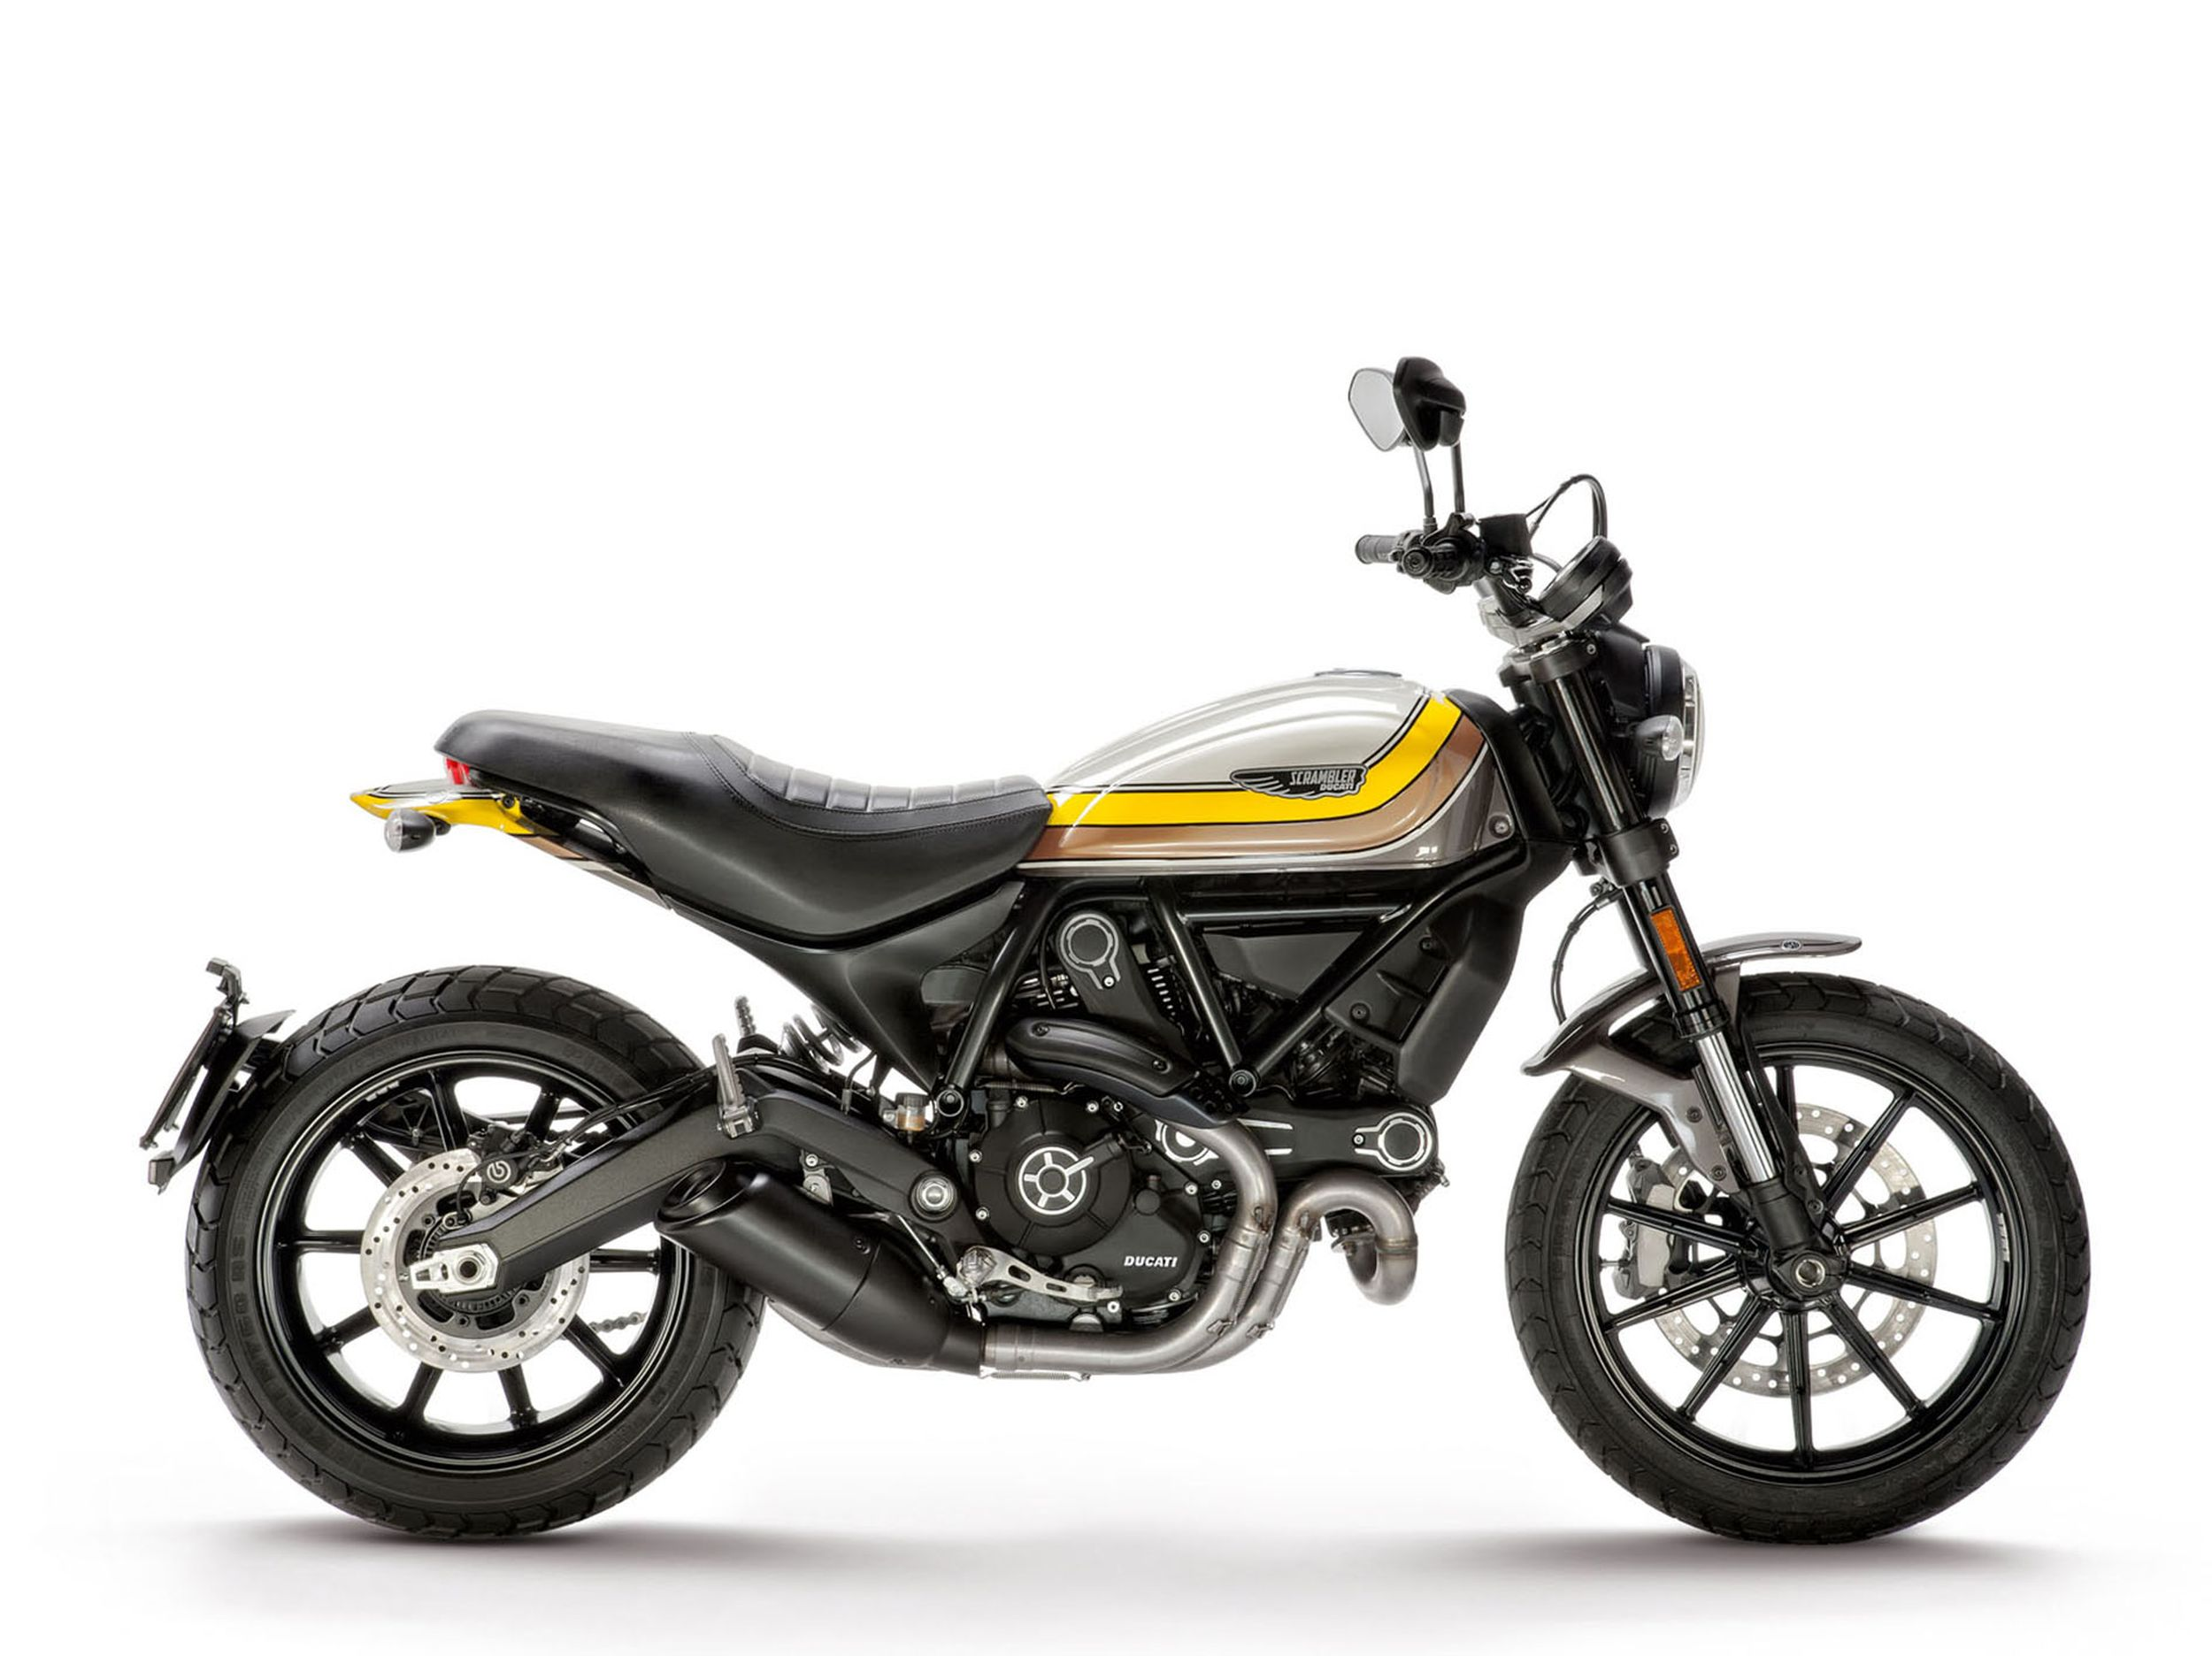 gebrauchte und neue ducati scrambler mach 2 0 motorr der. Black Bedroom Furniture Sets. Home Design Ideas